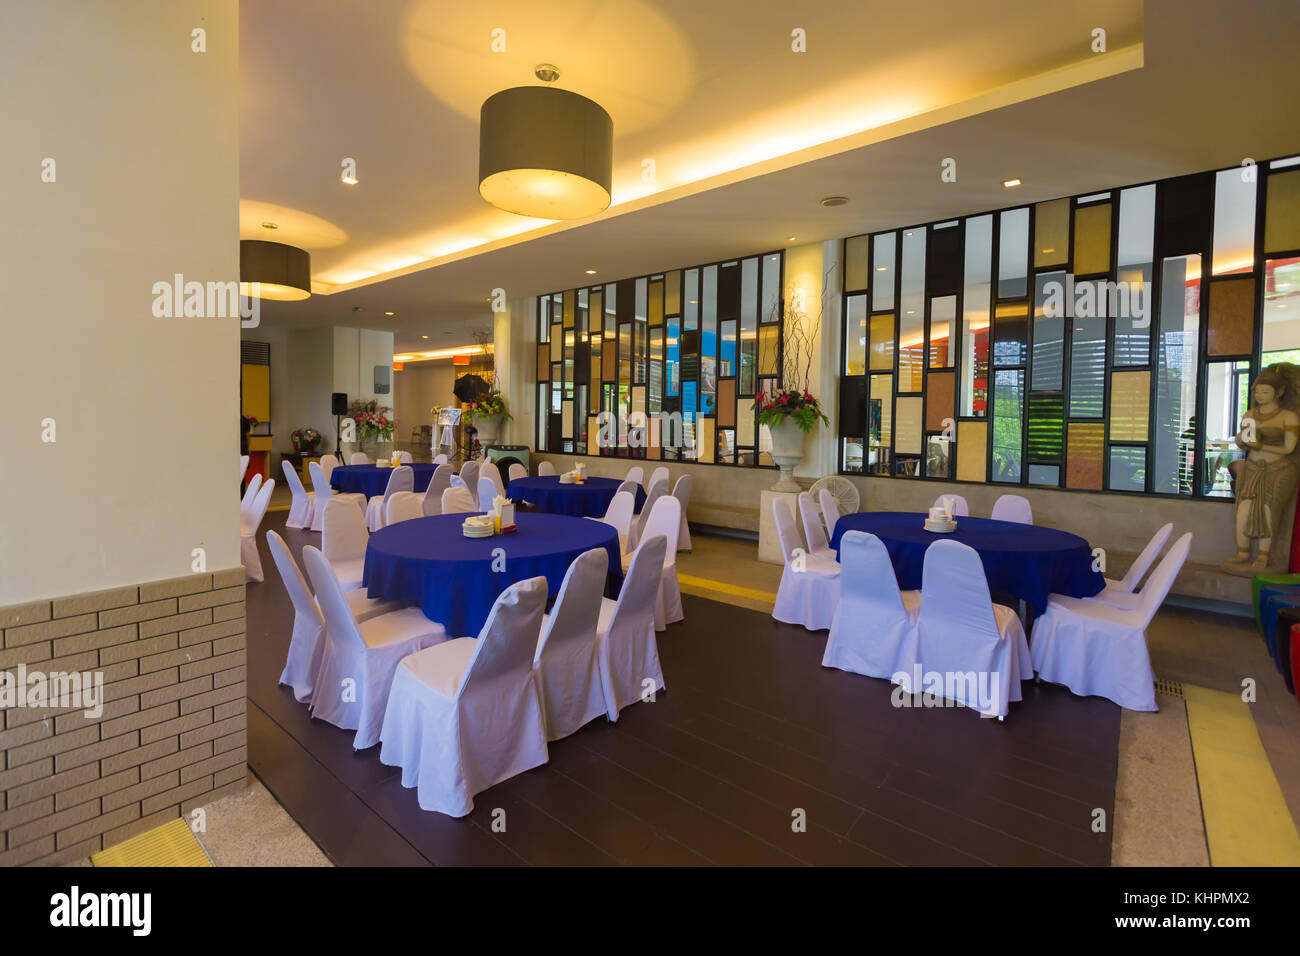 Dining room in the restaurant blurred or out of focus,Dining table in the building,Dinner room - Stock Image